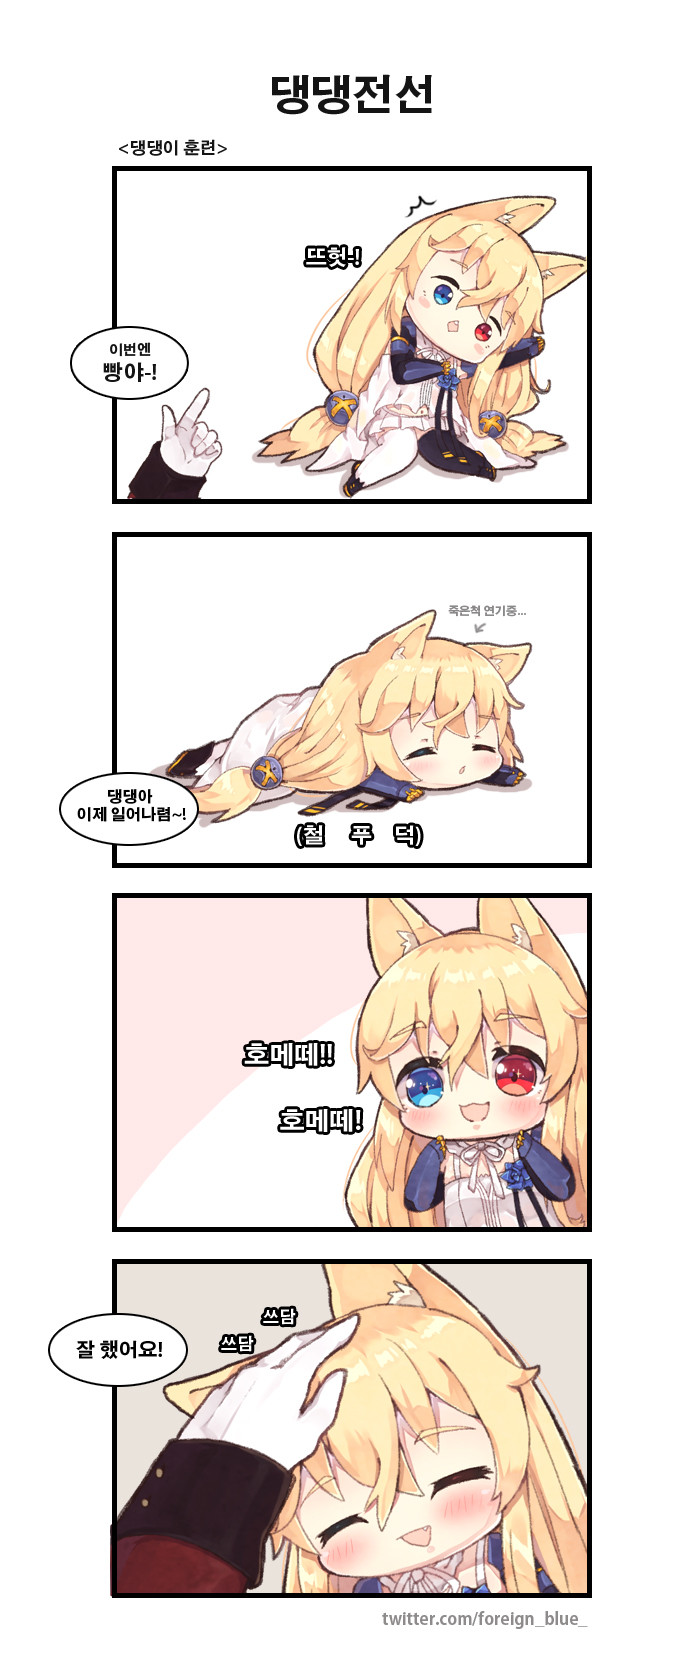 /\/\/\ 1girl 4koma :<> :3 :d animal_ears babydoll bangs black_legwear blonde_hair blue_eyes blush blush_stickers cat_ears chibi closed_eyes comic detached_collar elbow_gloves eyebrows_visible_through_hair fang foreign_blue g41_(girls_frontline) girls_frontline gloves hair_between_eyes hair_ornament heterochromia highres index_finger_raised korean long_hair long_sleeves lying mismatched_legwear navel on_stomach open_mouth out_of_frame outstretched_arms parted_lips petting pleated_skirt purple_gloves red_eyes skirt smile thigh-highs translation_request upper_teeth very_long_hair white_babydoll white_collar white_gloves white_legwear white_skirt